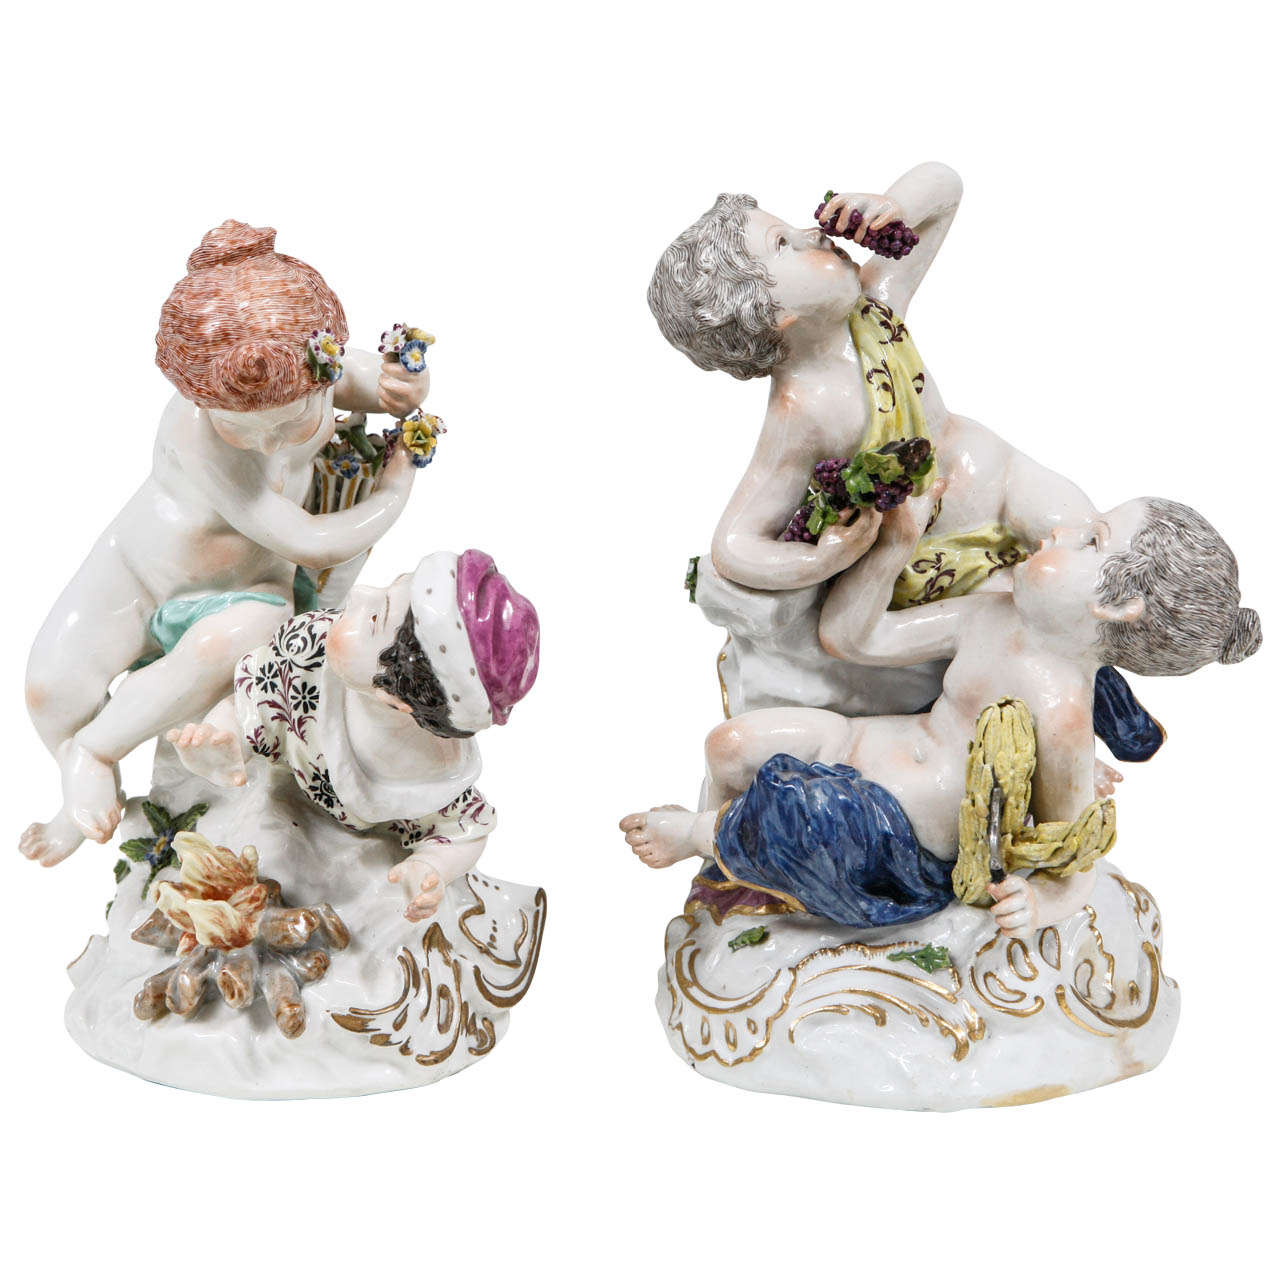 Pair of 19th Century French Porcelain Figures